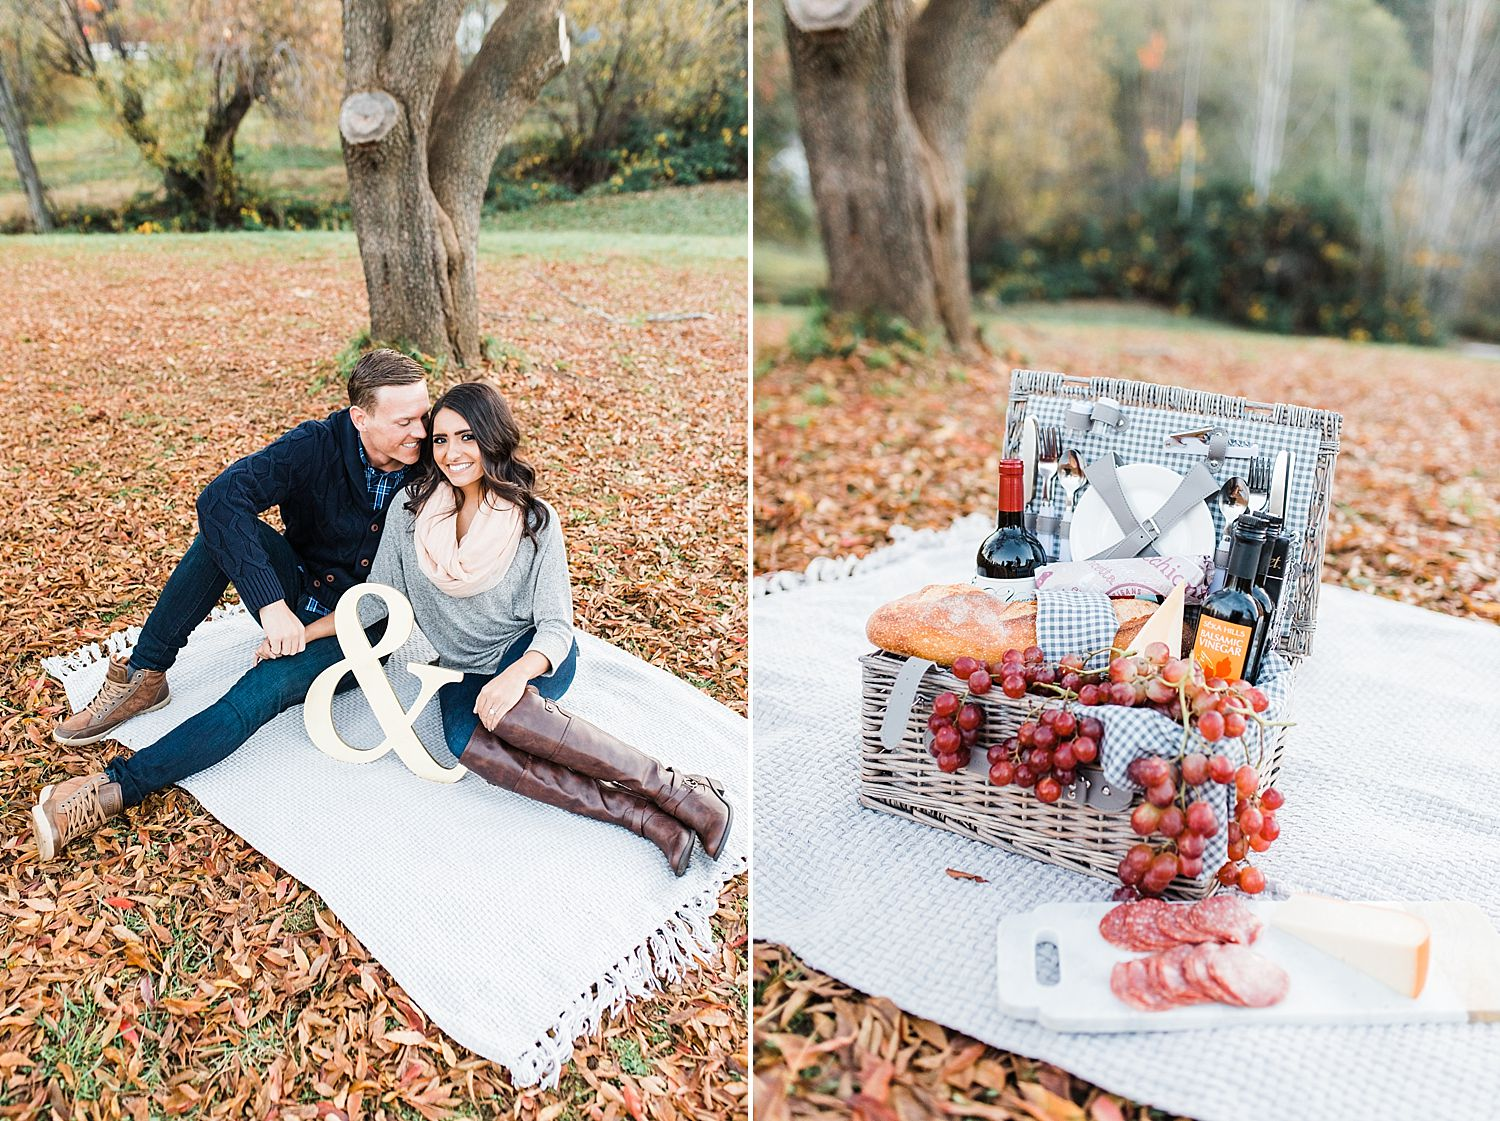 How to Have A Fun Engagement Picnic in Apple Hill - Brooke and Darin - Ashley Baumgartner - Sacramento Wedding Photographer_0004.jpg